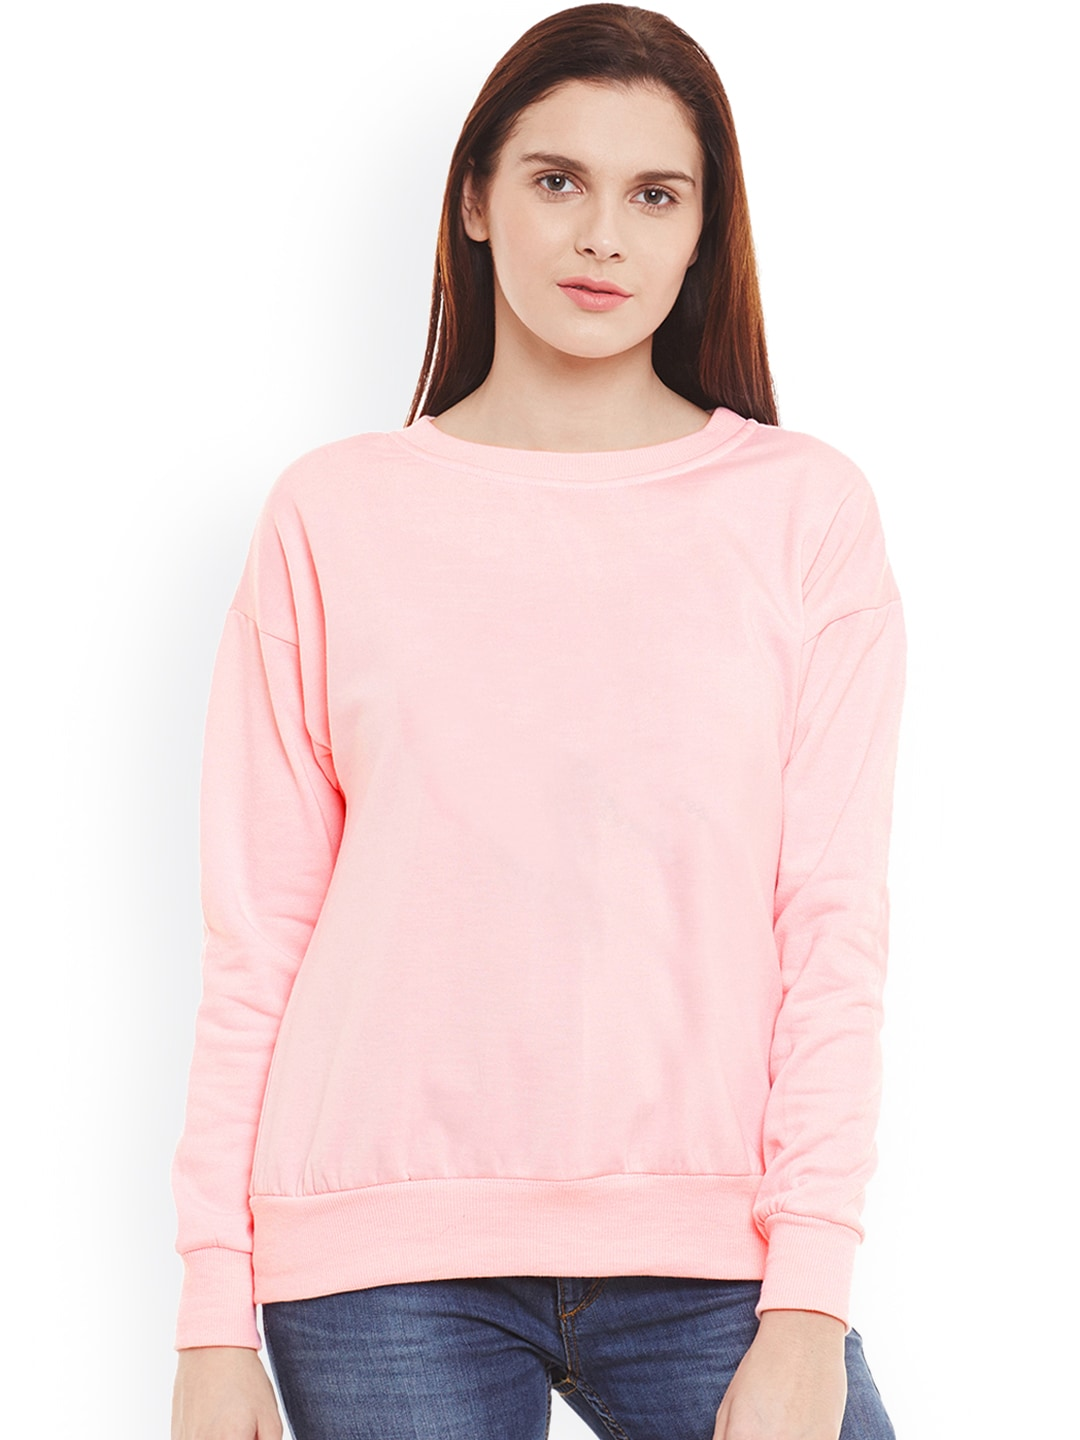 5c1f78982bb6a Belle Fille - Exclusive Belle Fille Online Store in India at Myntra